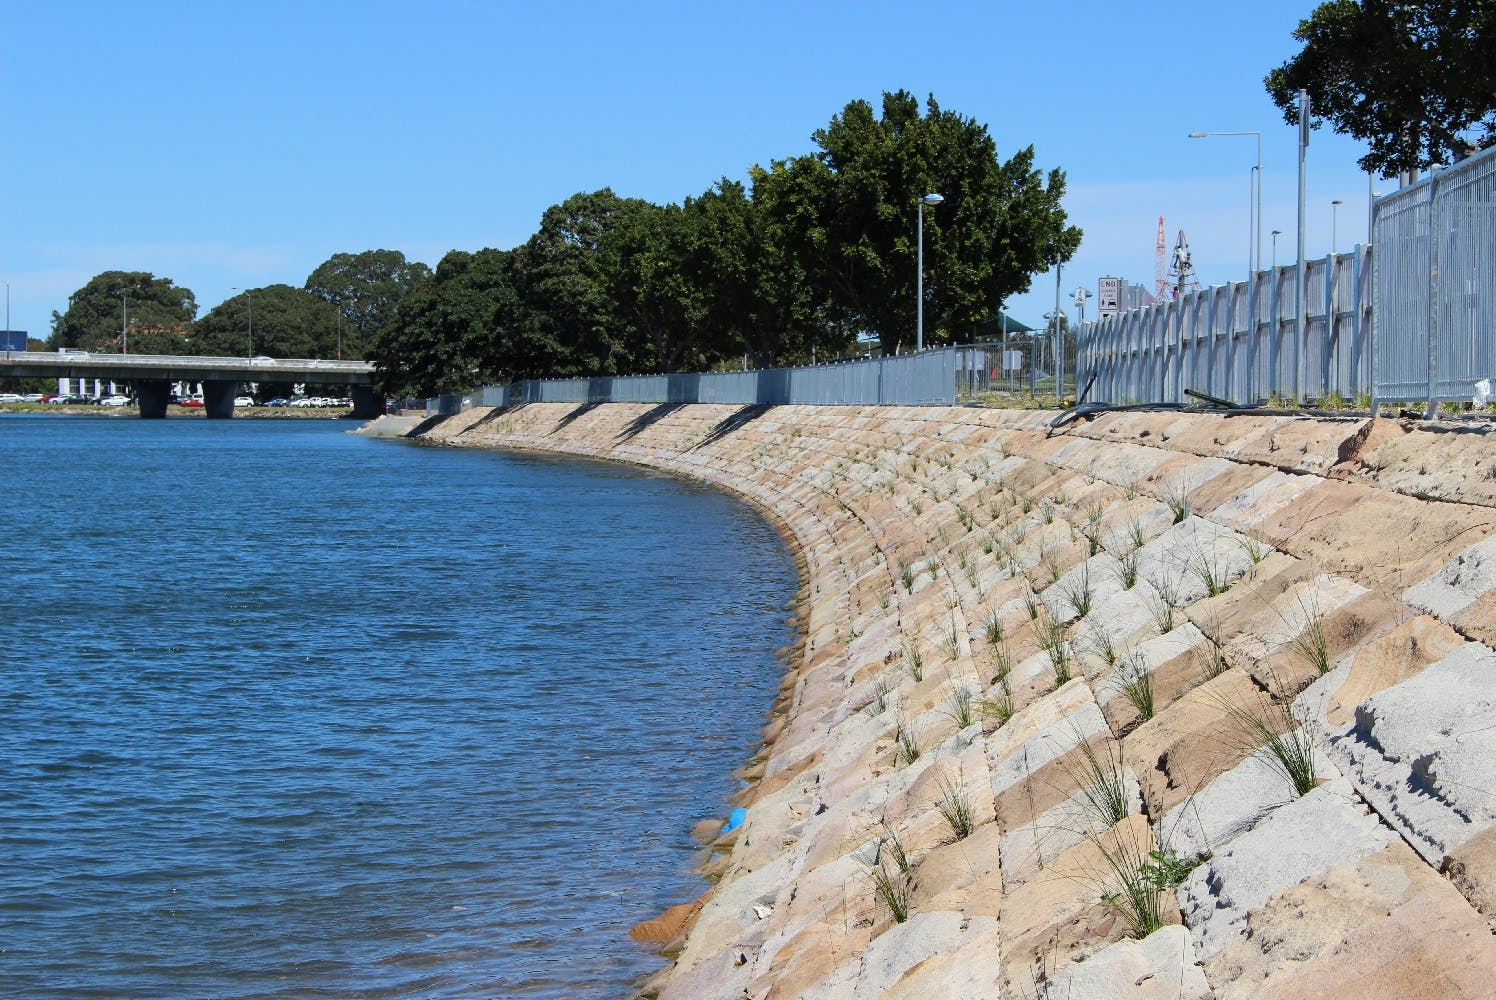 Sandstone blocks to replace concrete banks in some sections. (Photo Alexandra Canal)